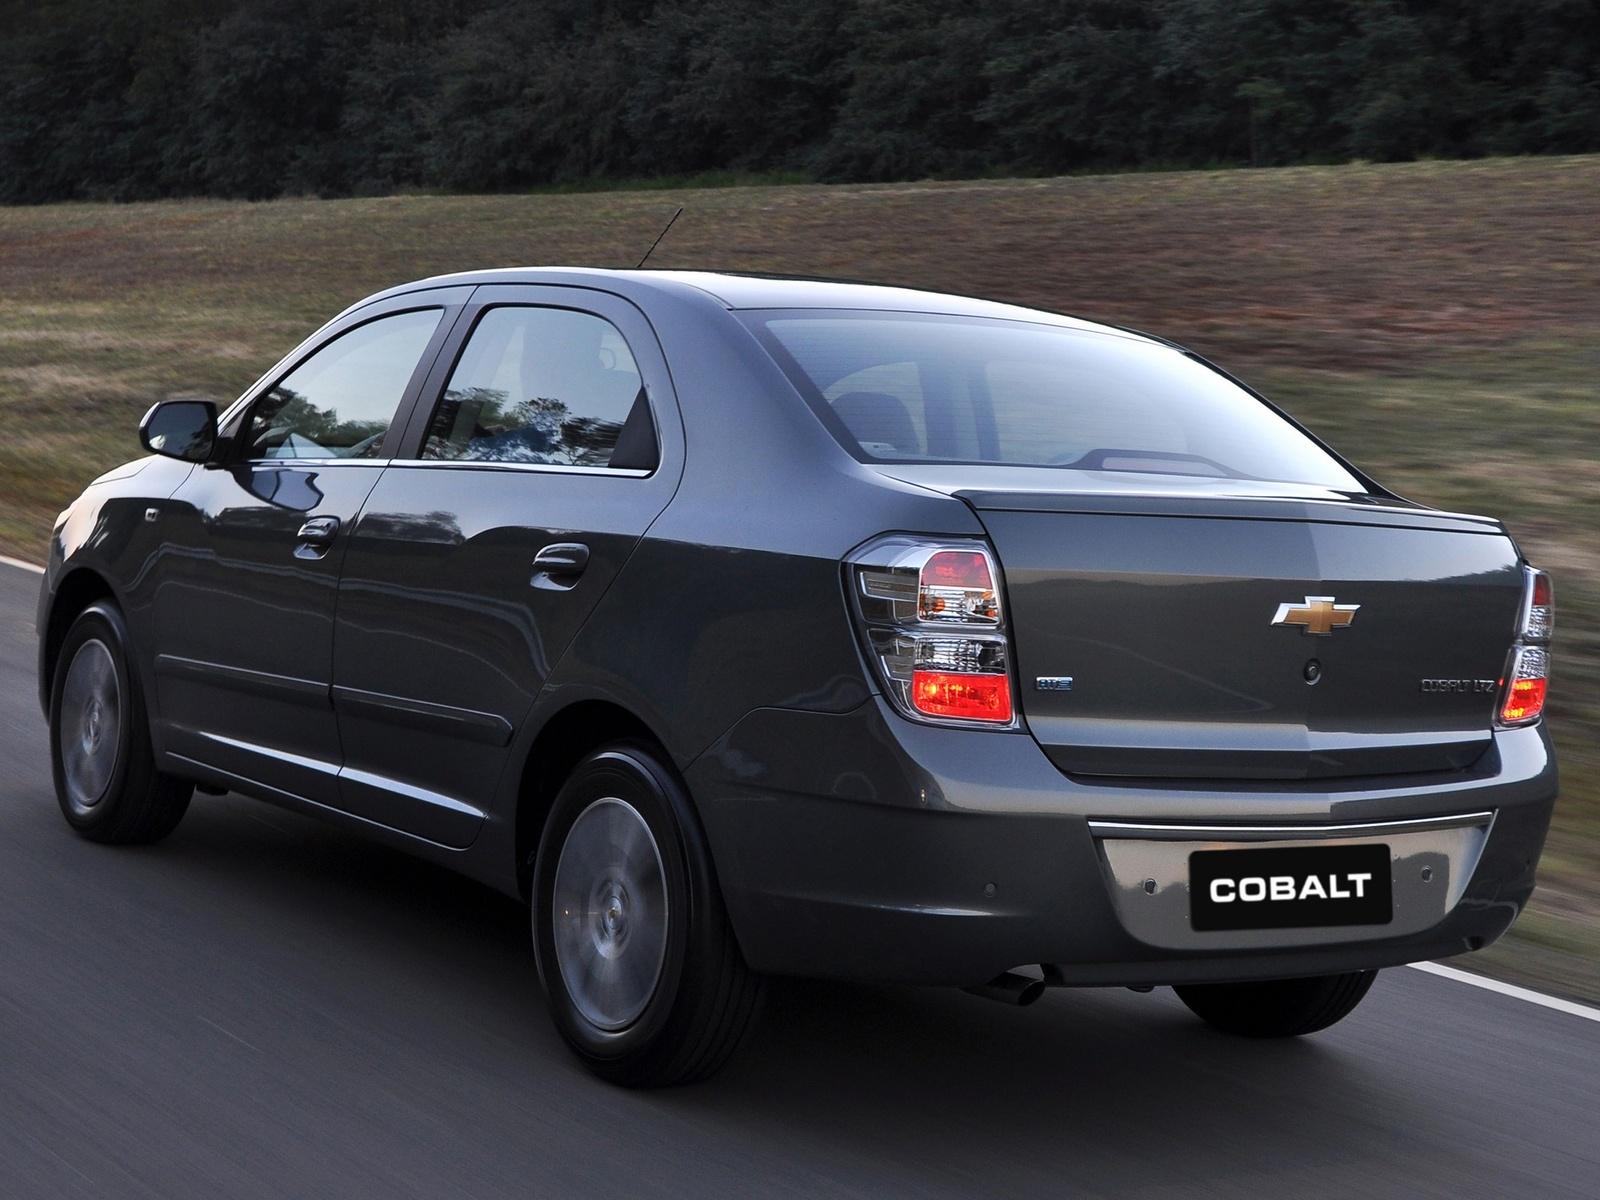 Chevrolet a Convocar Cobalt High Resolution Wallpaper Free